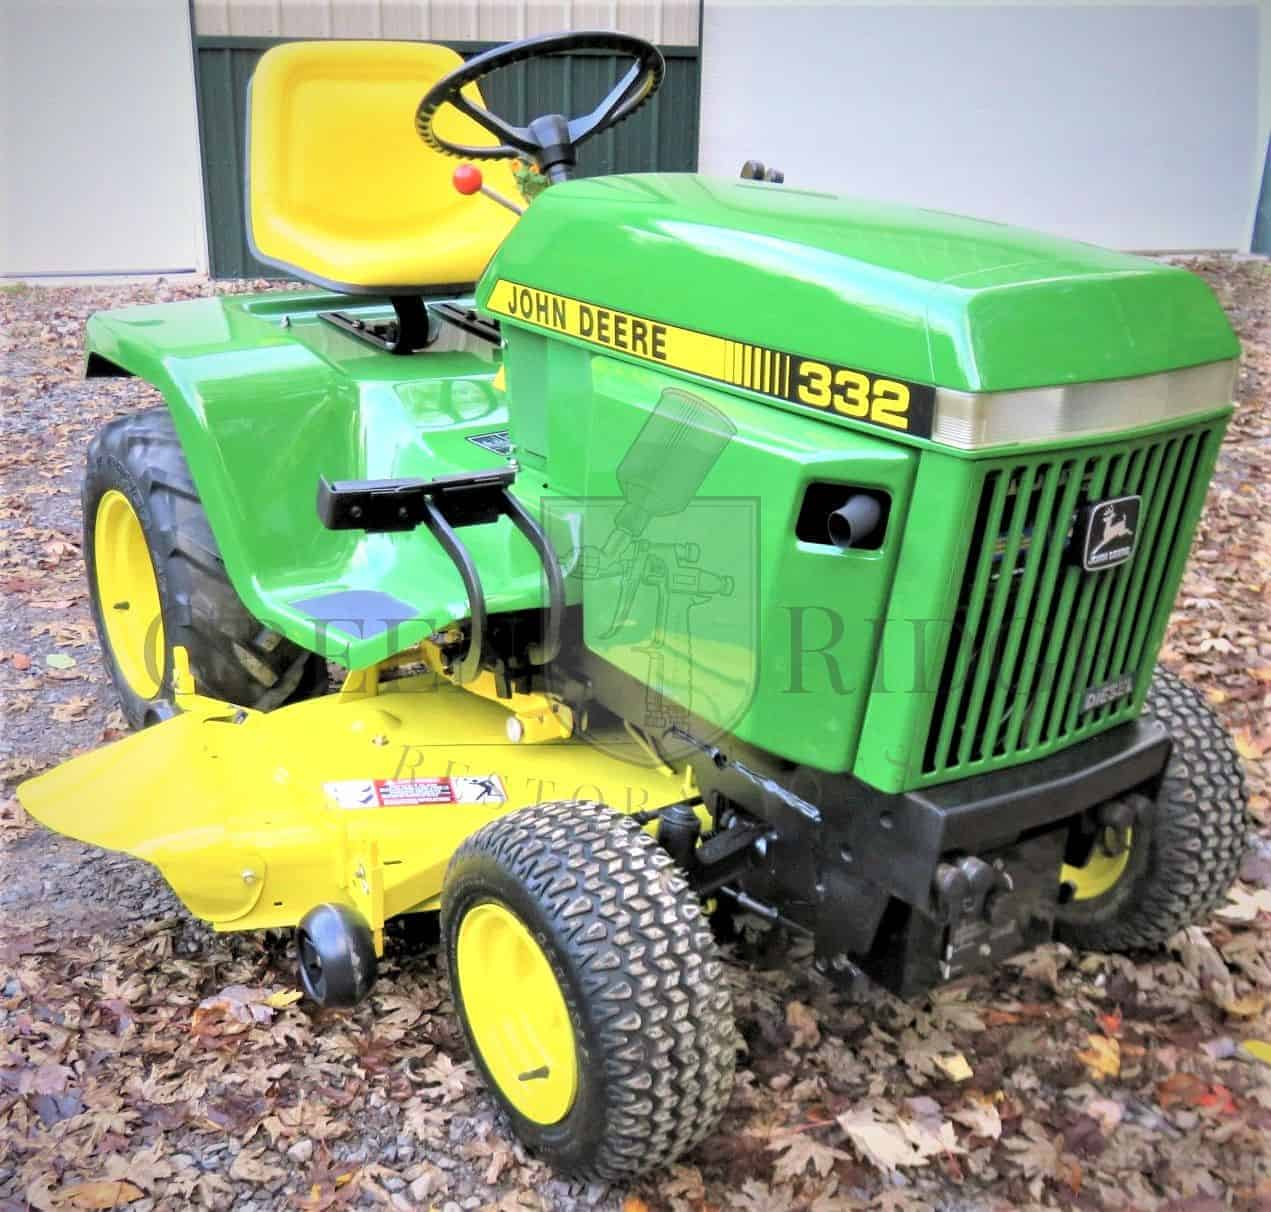 John Deere 332 Garden Tractor Manual Best Deer Photos Water